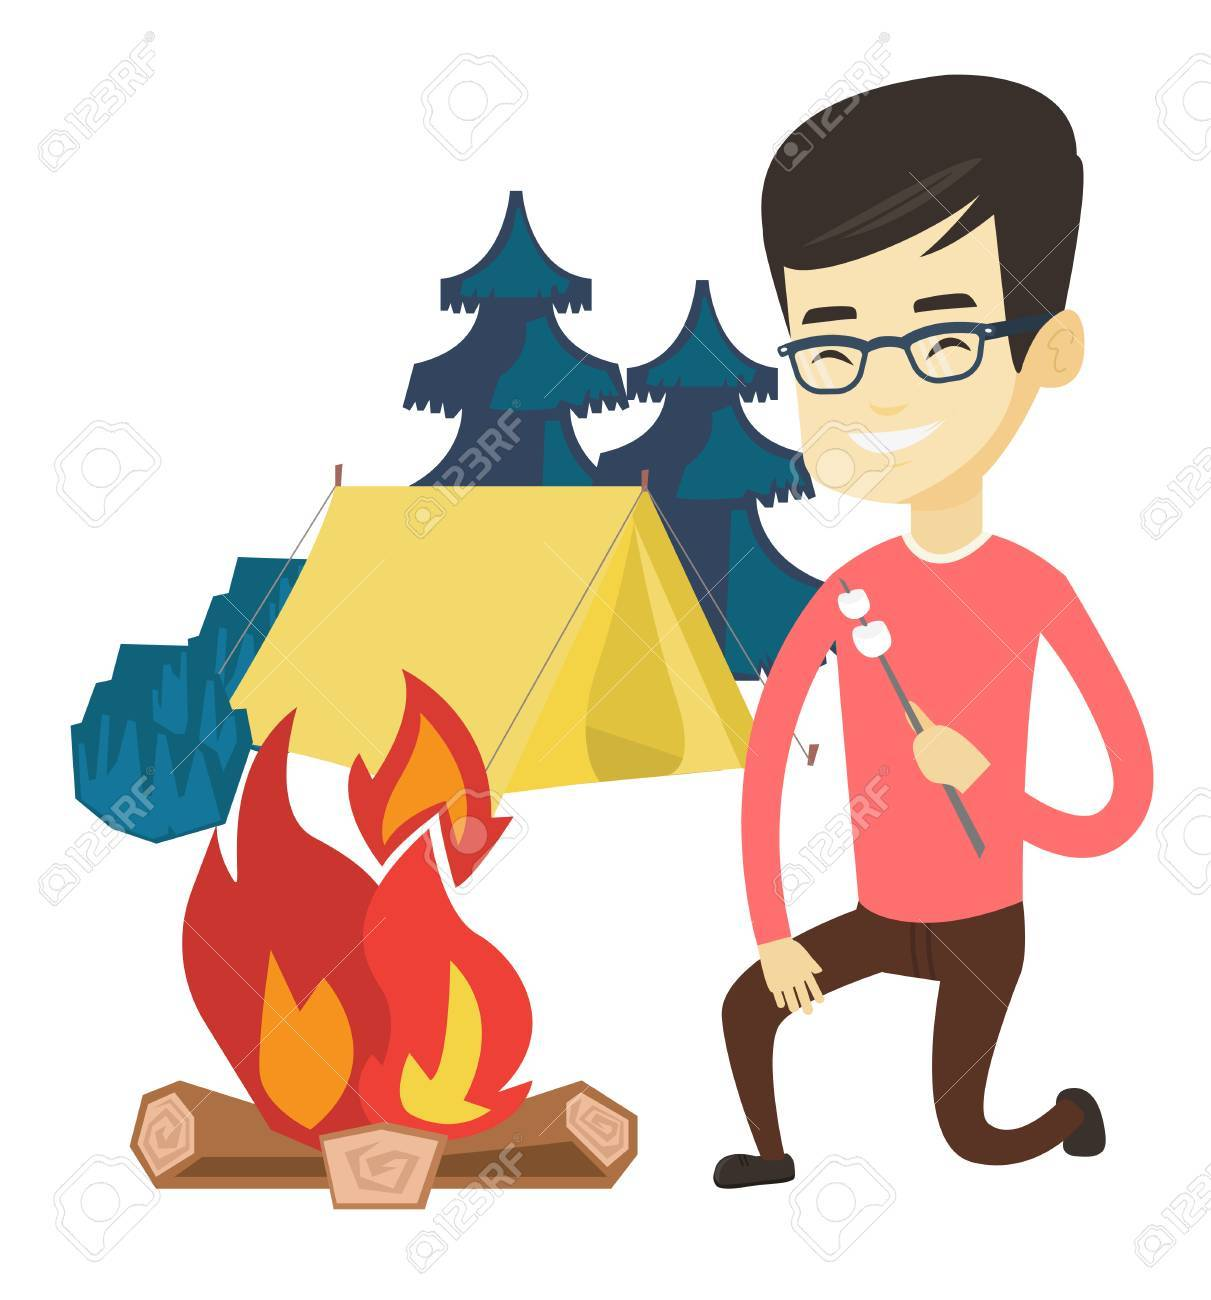 Asian Man Sitting Near Campfire And Roasting Marshmallow Over Tourist Relaxing On